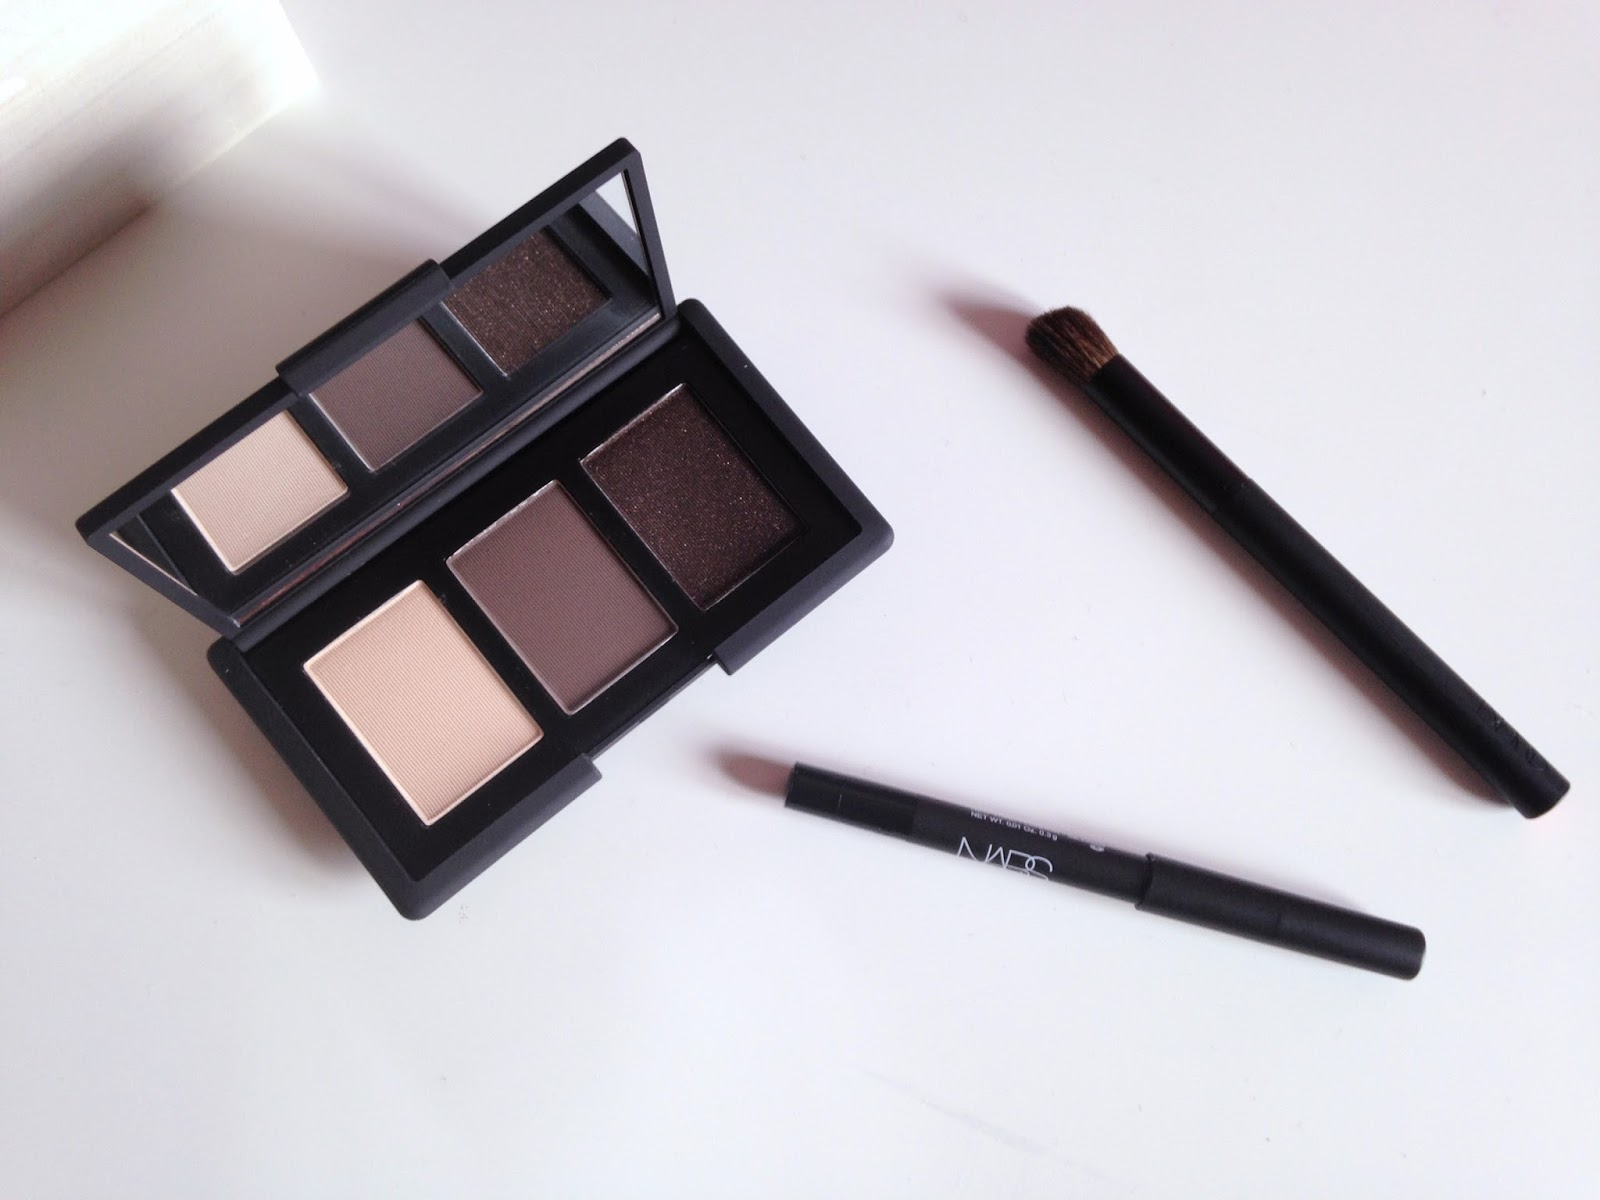 NARSissist Smokey Eye Compact